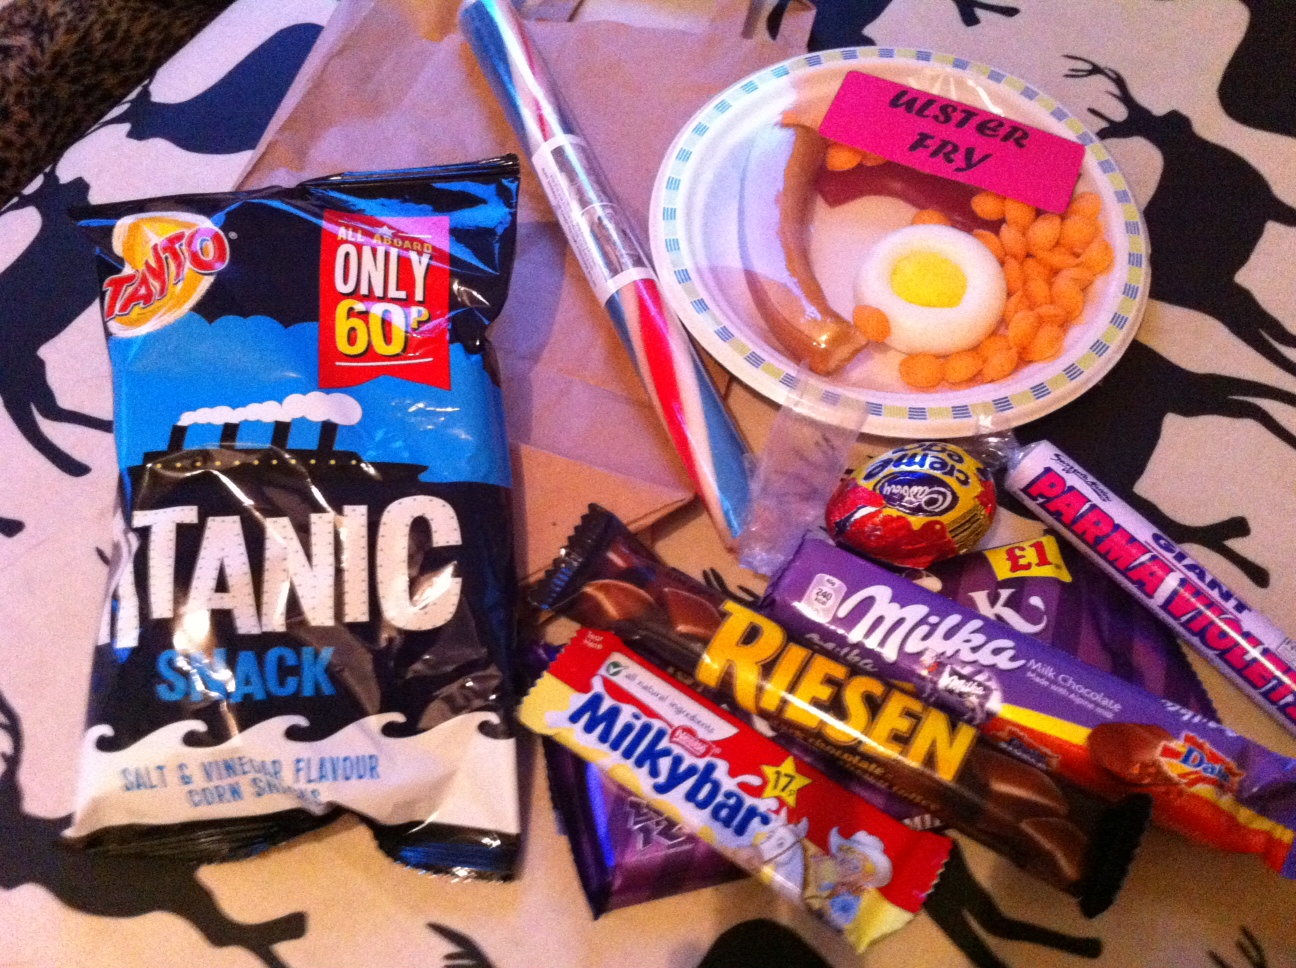 Titanic Crisps & A Sugar Ulster Fry. Goodies from Aunt Sandra's Candy Factory for my US Candy Penpal